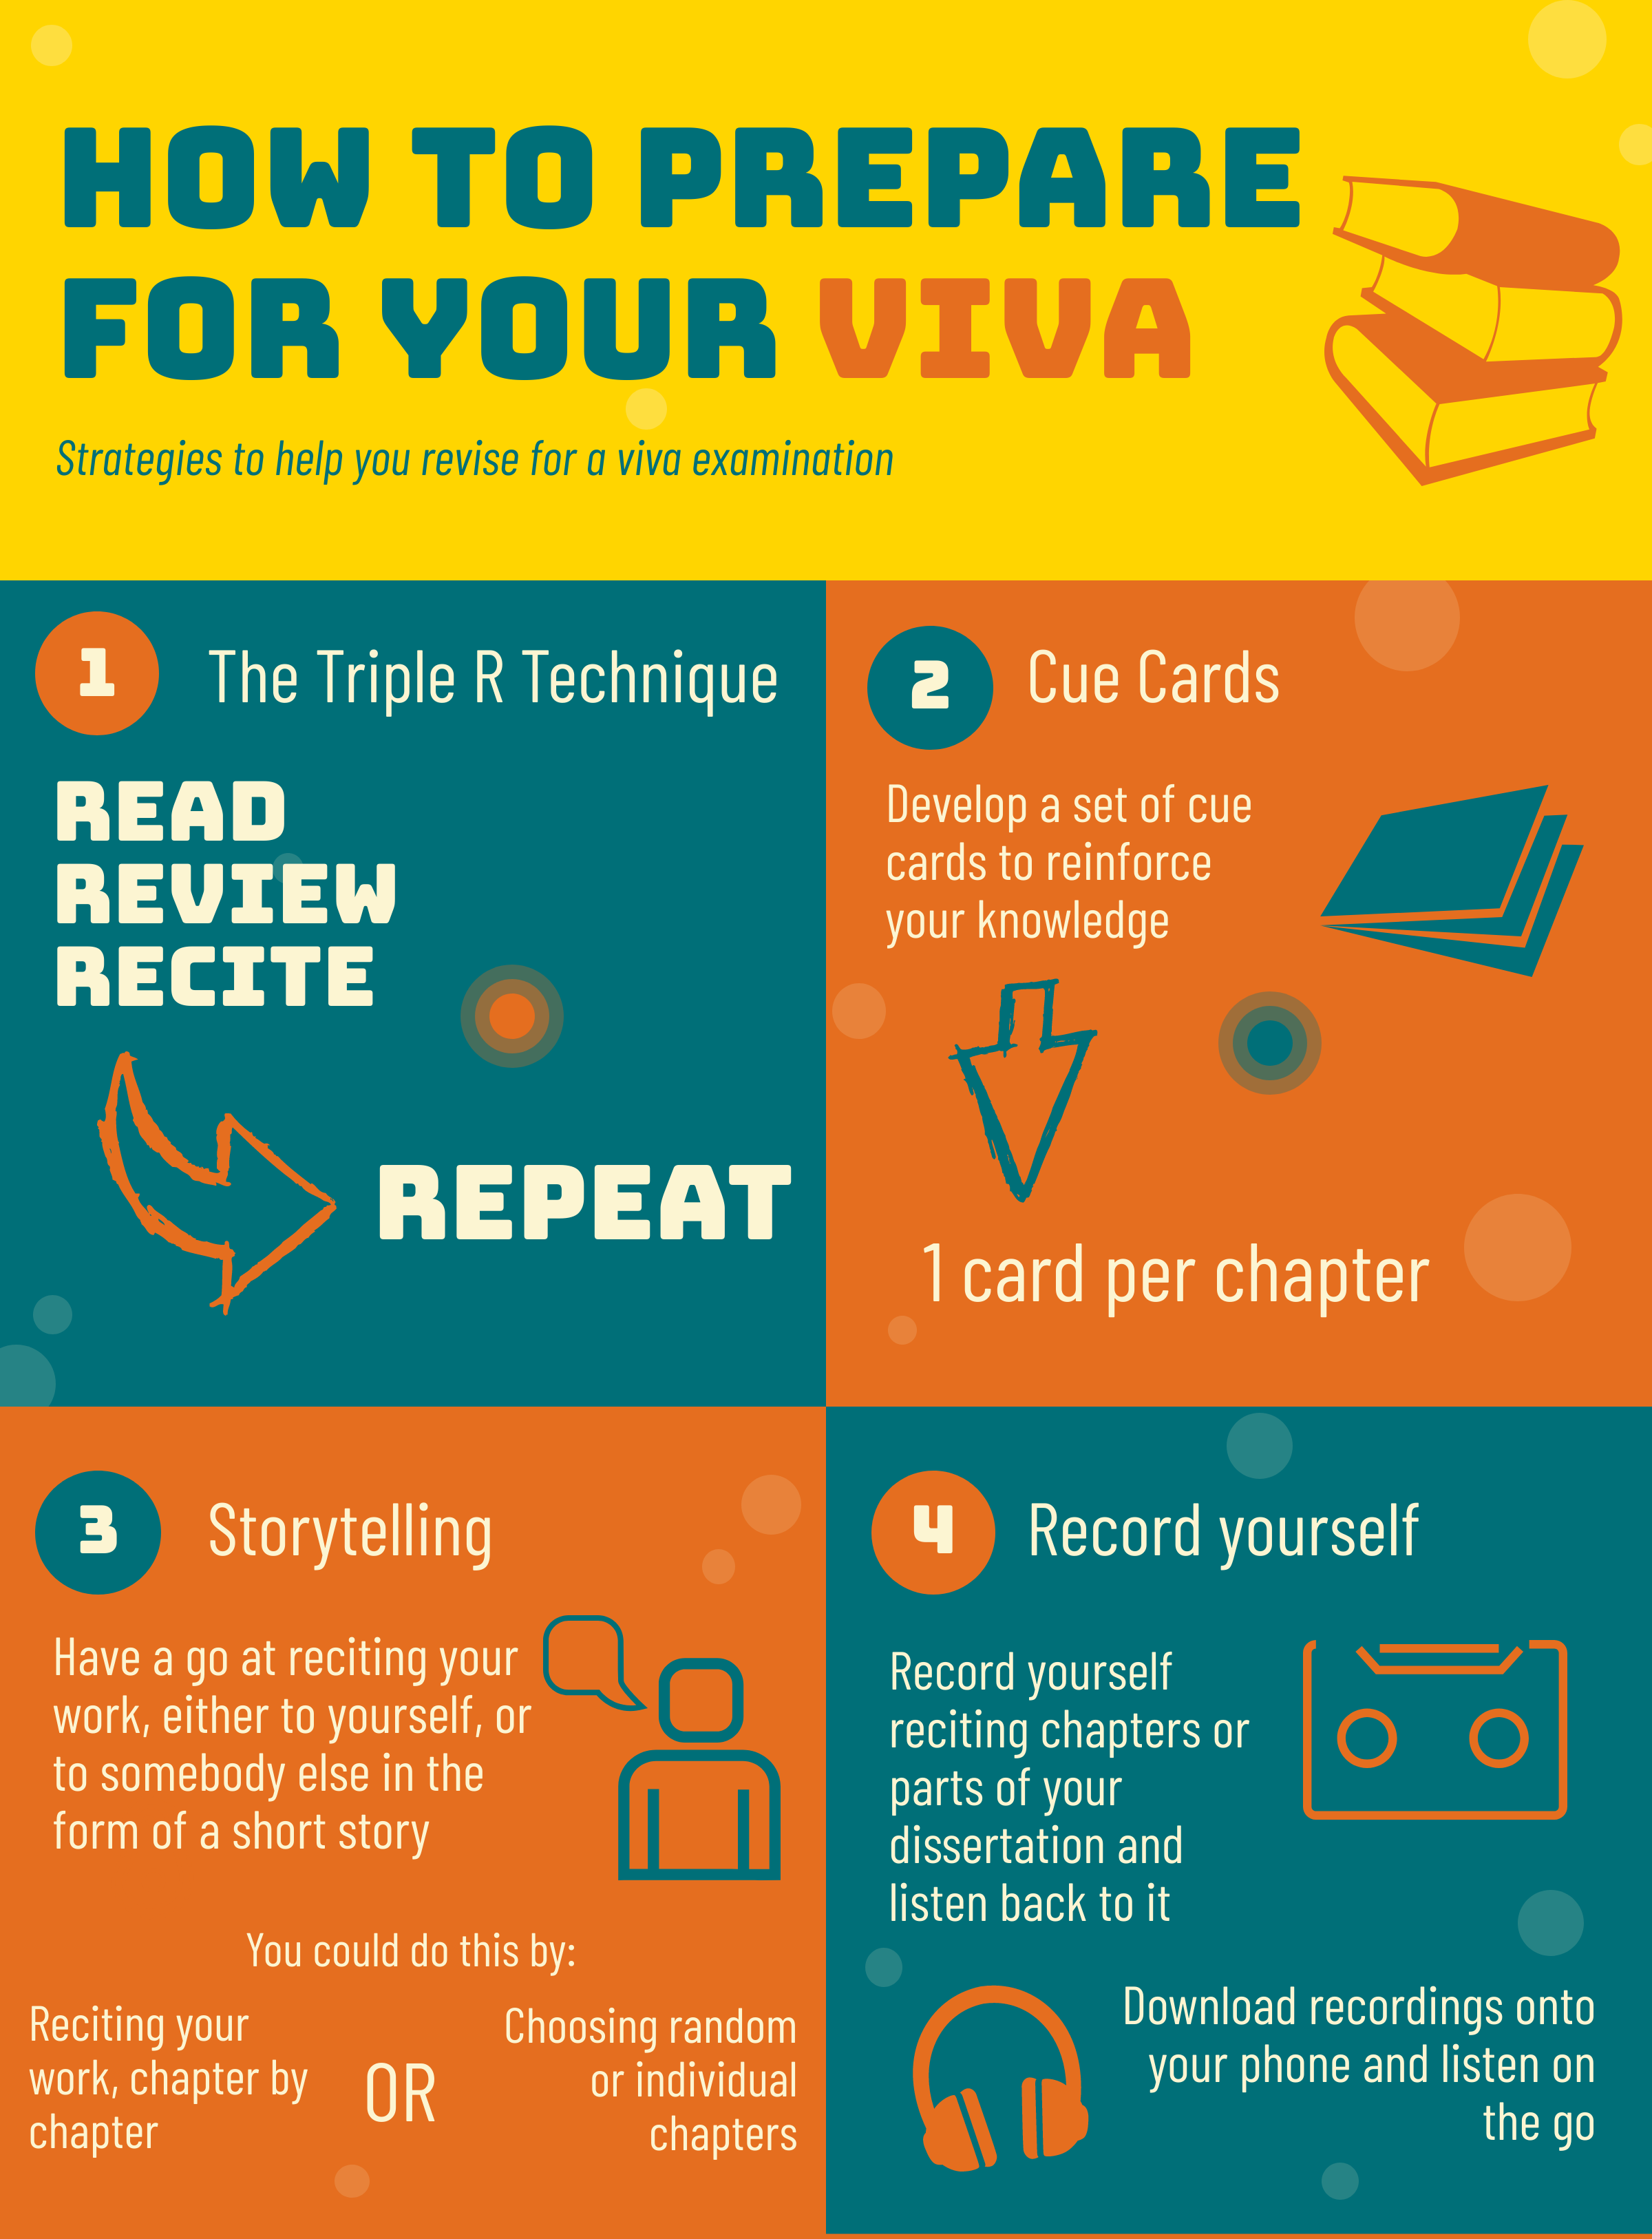 an infographic summarising different revision strategies